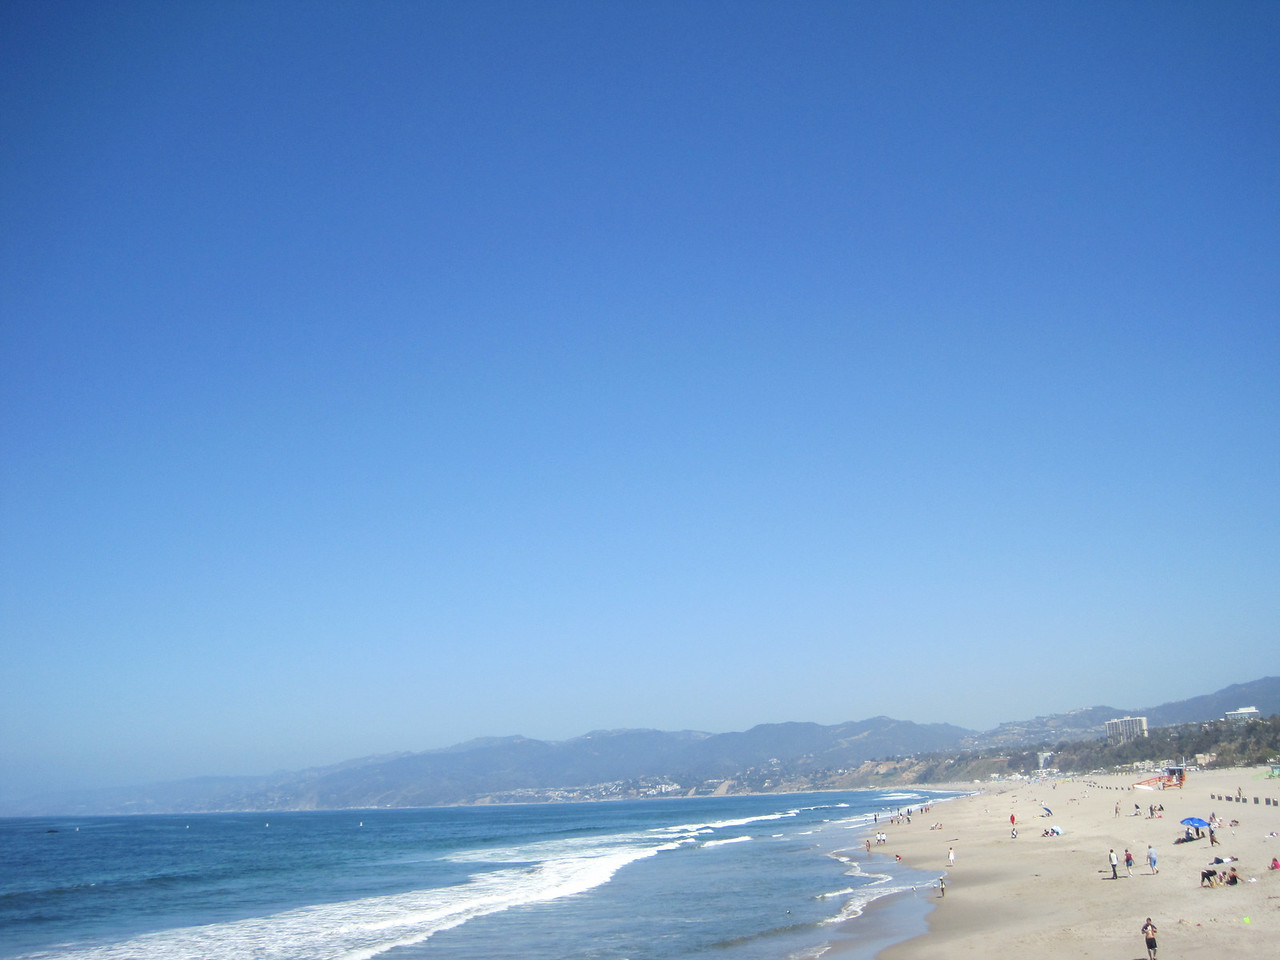 Santa Monica beach area, notice the mountains in the background.